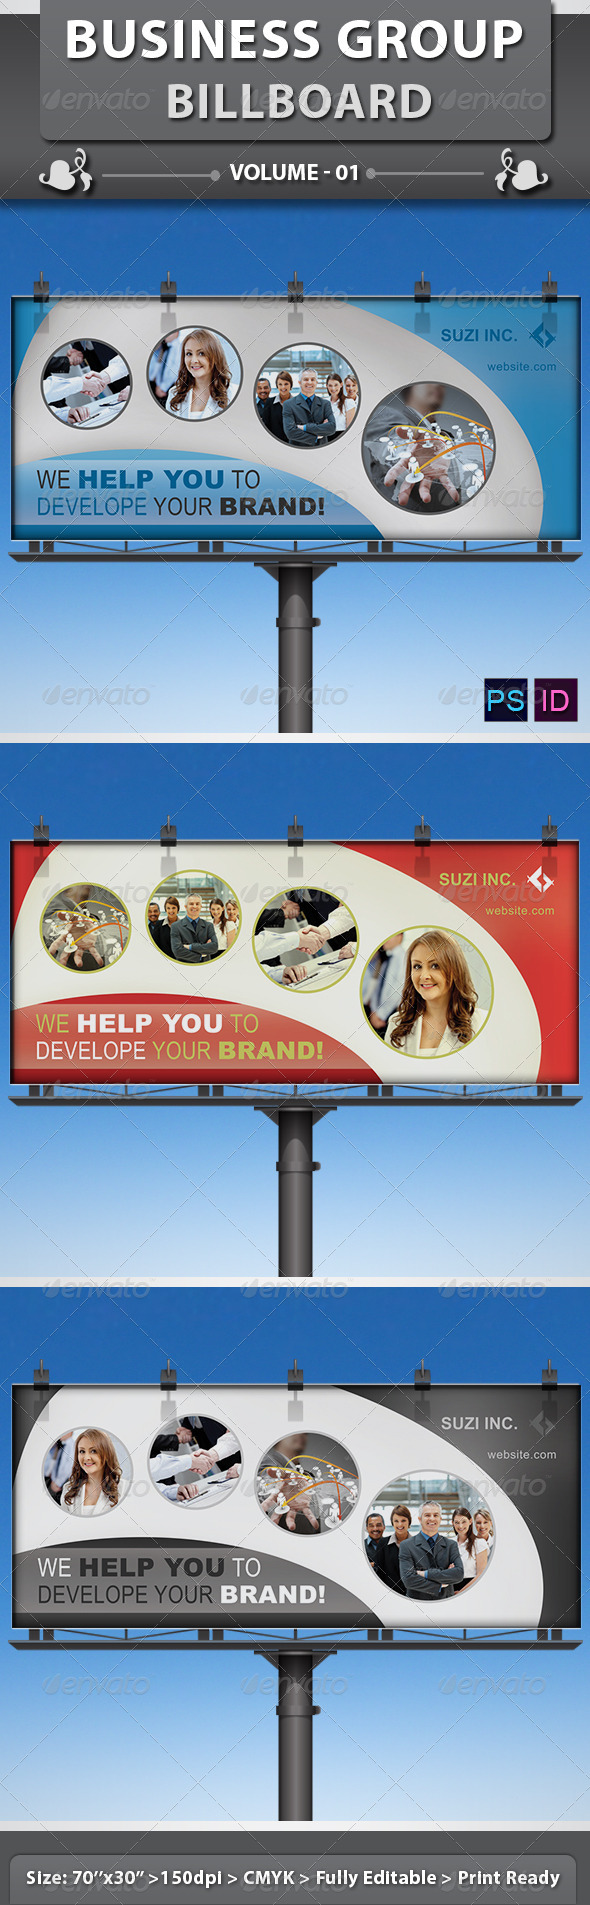 GraphicRiver Business Group Billboard v1 5781840